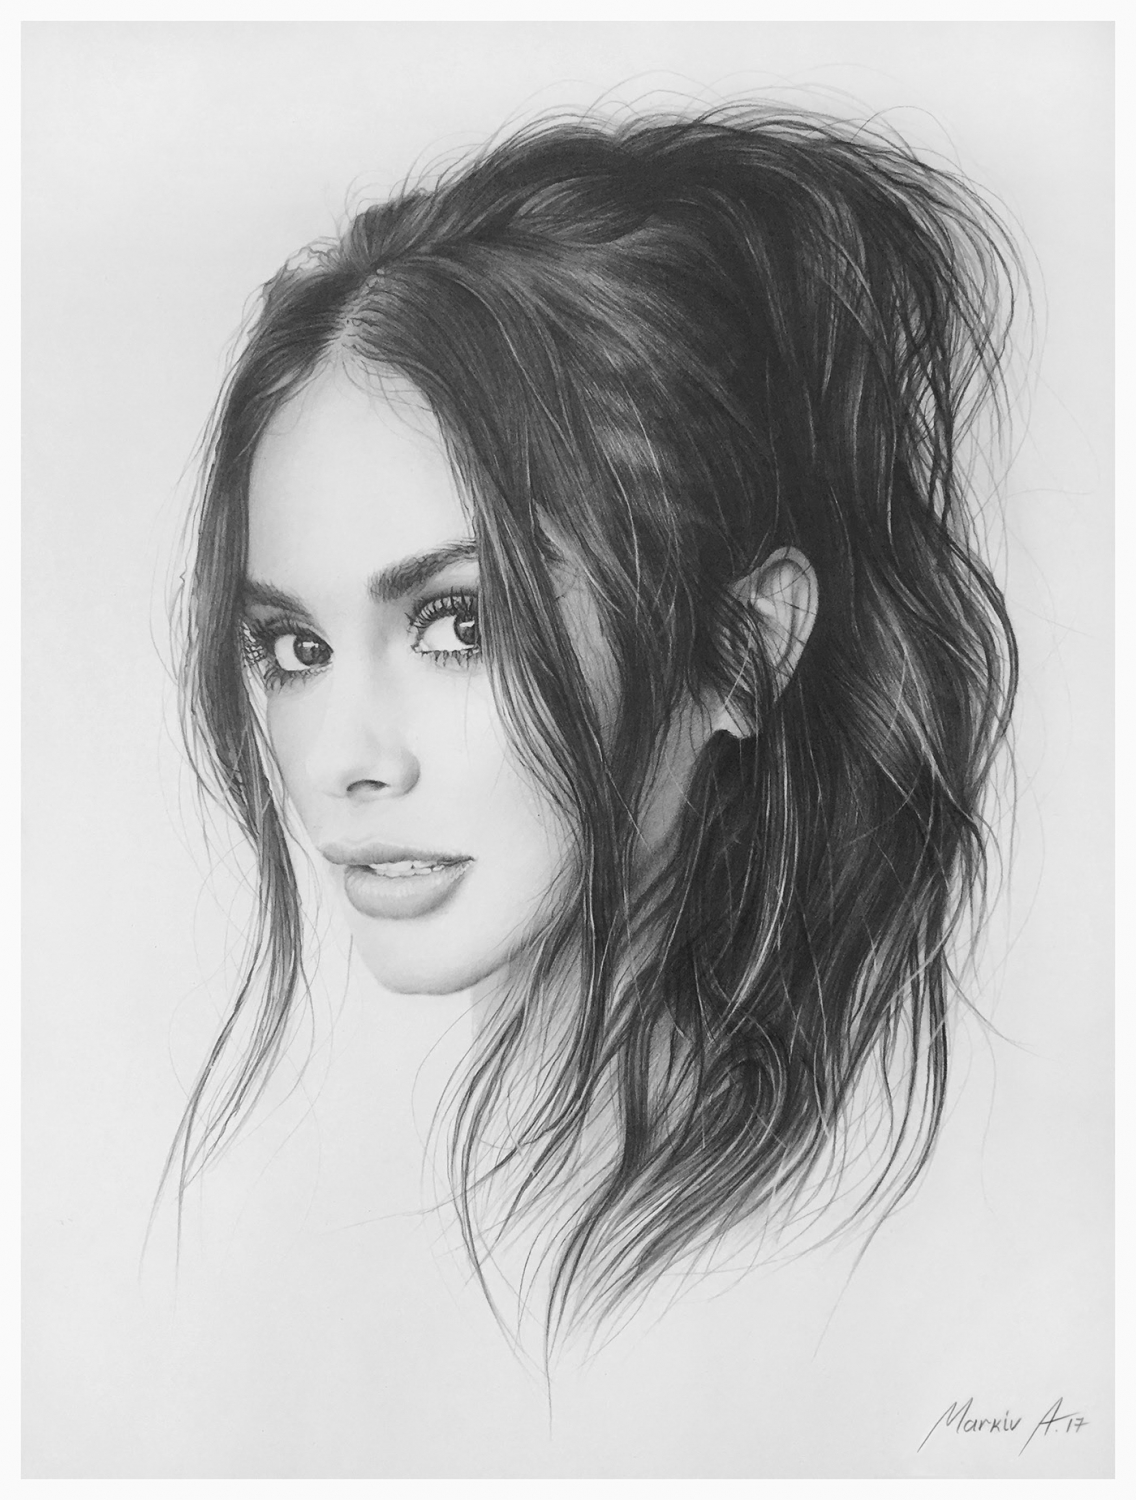 pencil drawing portrait woman sofia andriy markiv